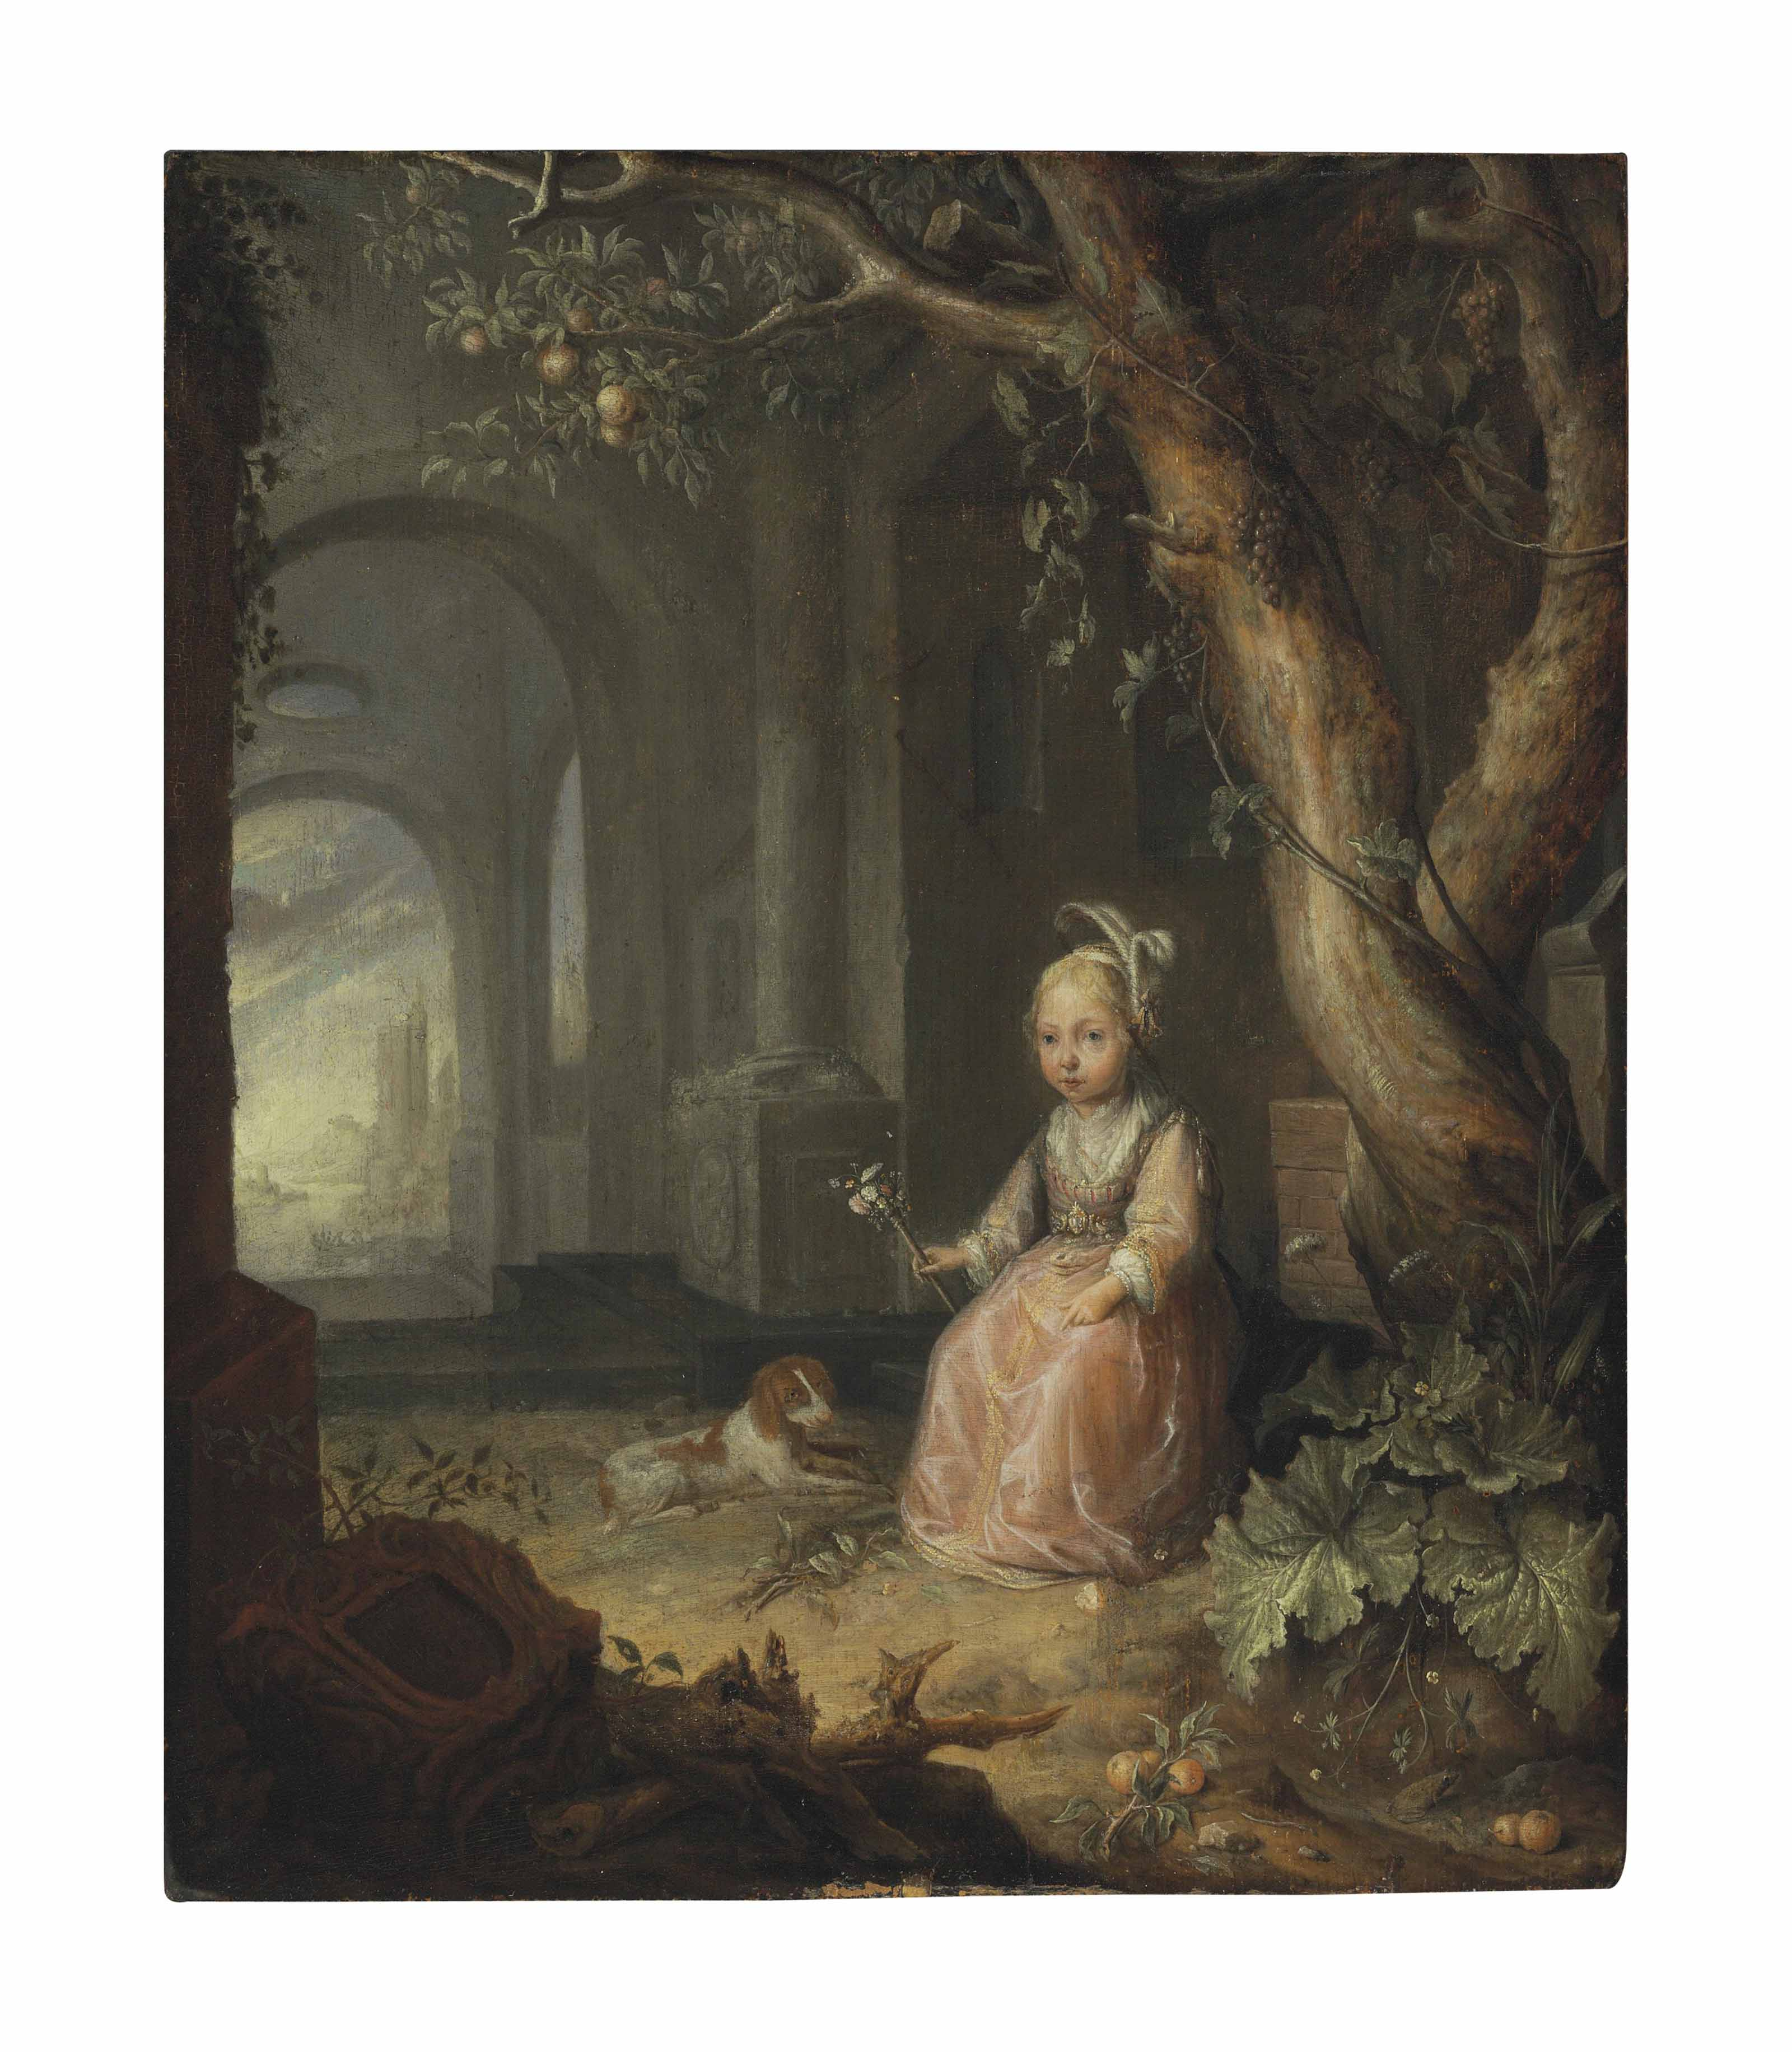 Portrait of a girl with her dog in a courtyard, a landscape with ruins beyond